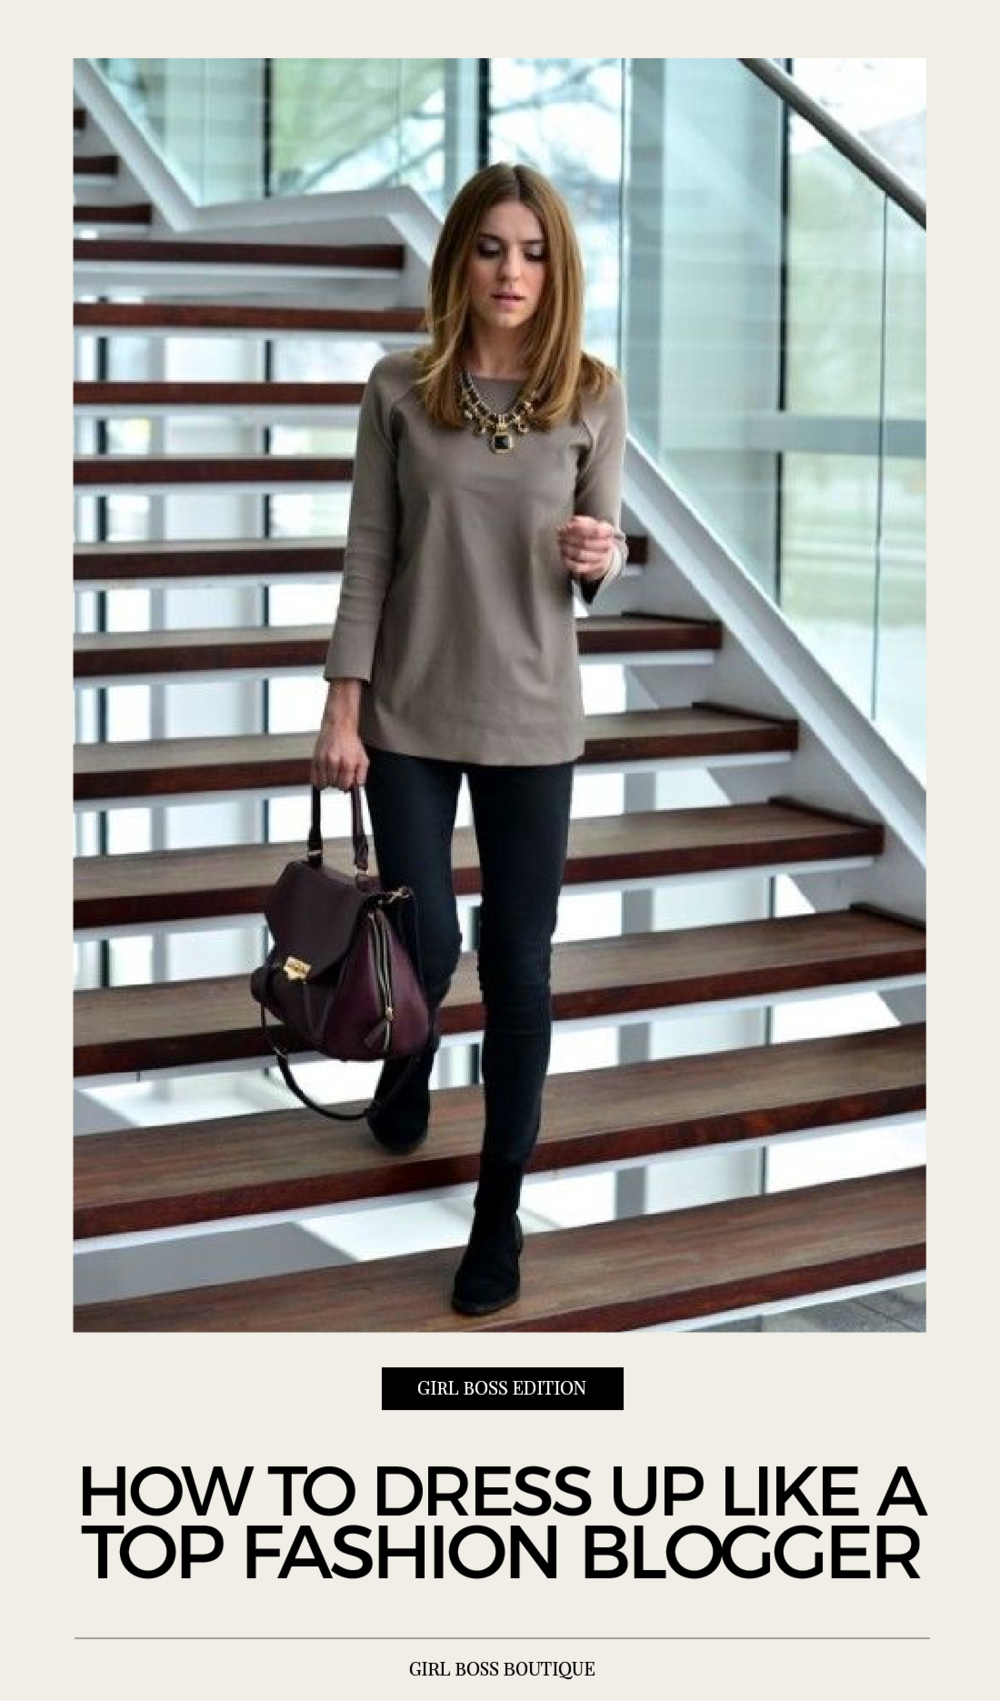 How to dress up like a top fashion blogger Every girl has this desire to dress up like a top fashion blogger and wants to copy their style. Most of the time, that can be a little challenging, because they have fashion nailed down so effortlessly.  If you have been thinking about how to look stylish effortlessly, then this list is the right place to start for you! It is full of tricks and hacks that are going to inspire you to start dressing up like a top fashion blogger